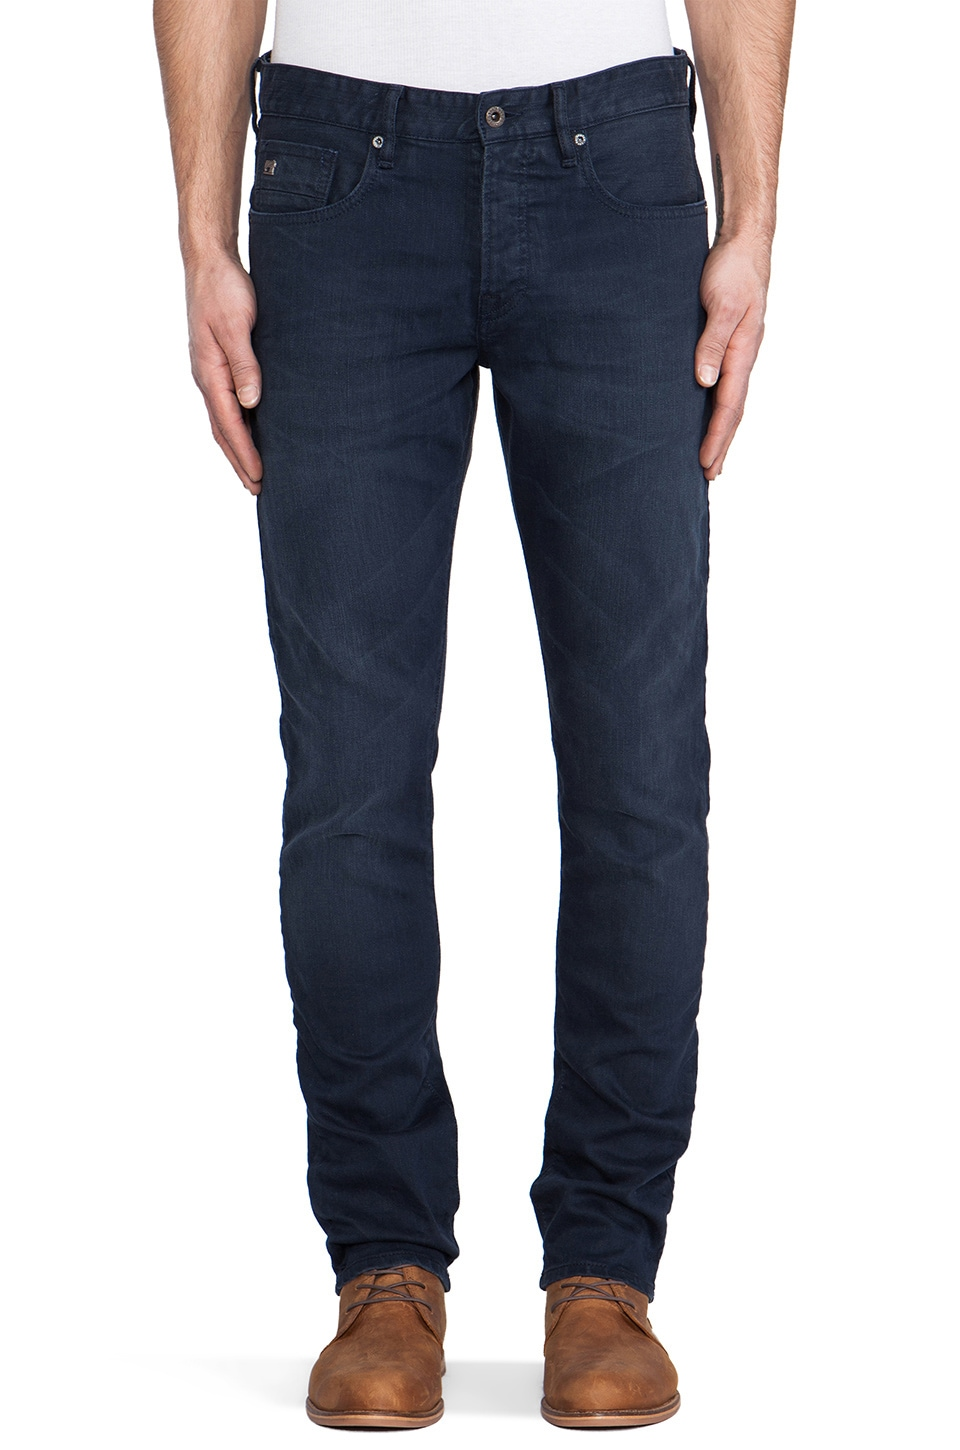 Scotch & Soda Ralston Slim in Casinero